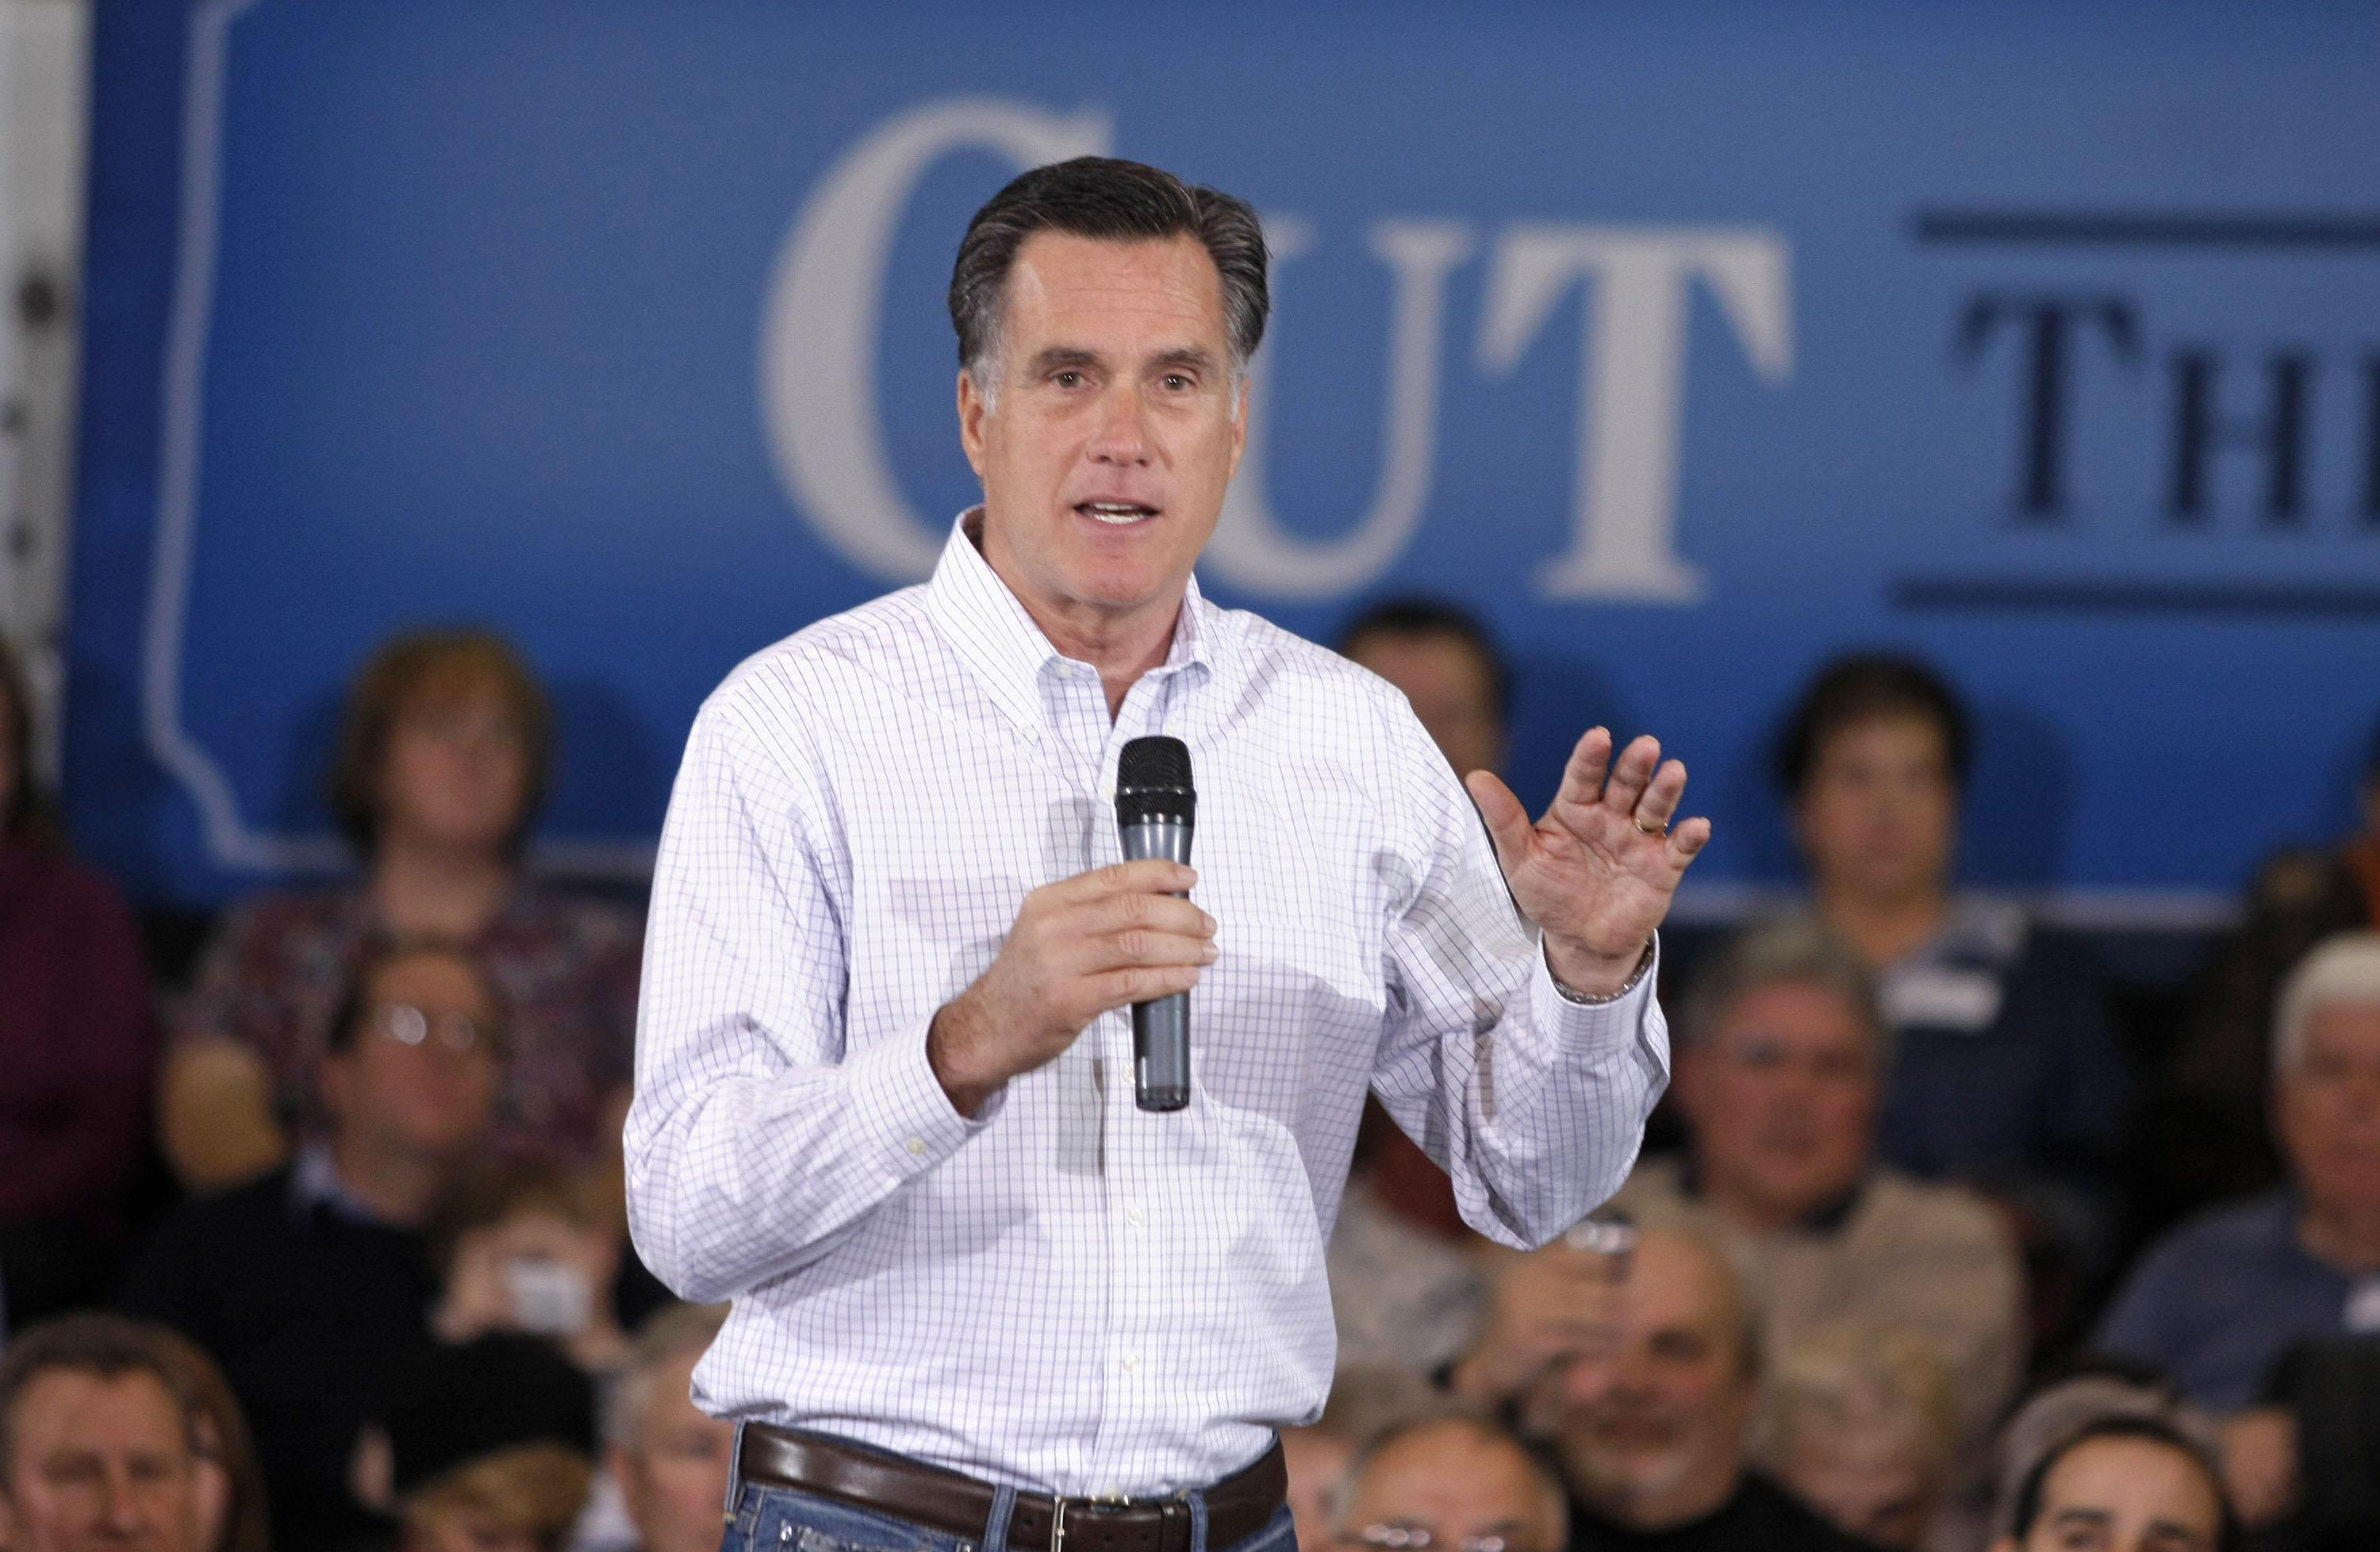 Mitt Romney speaks in Arizona.